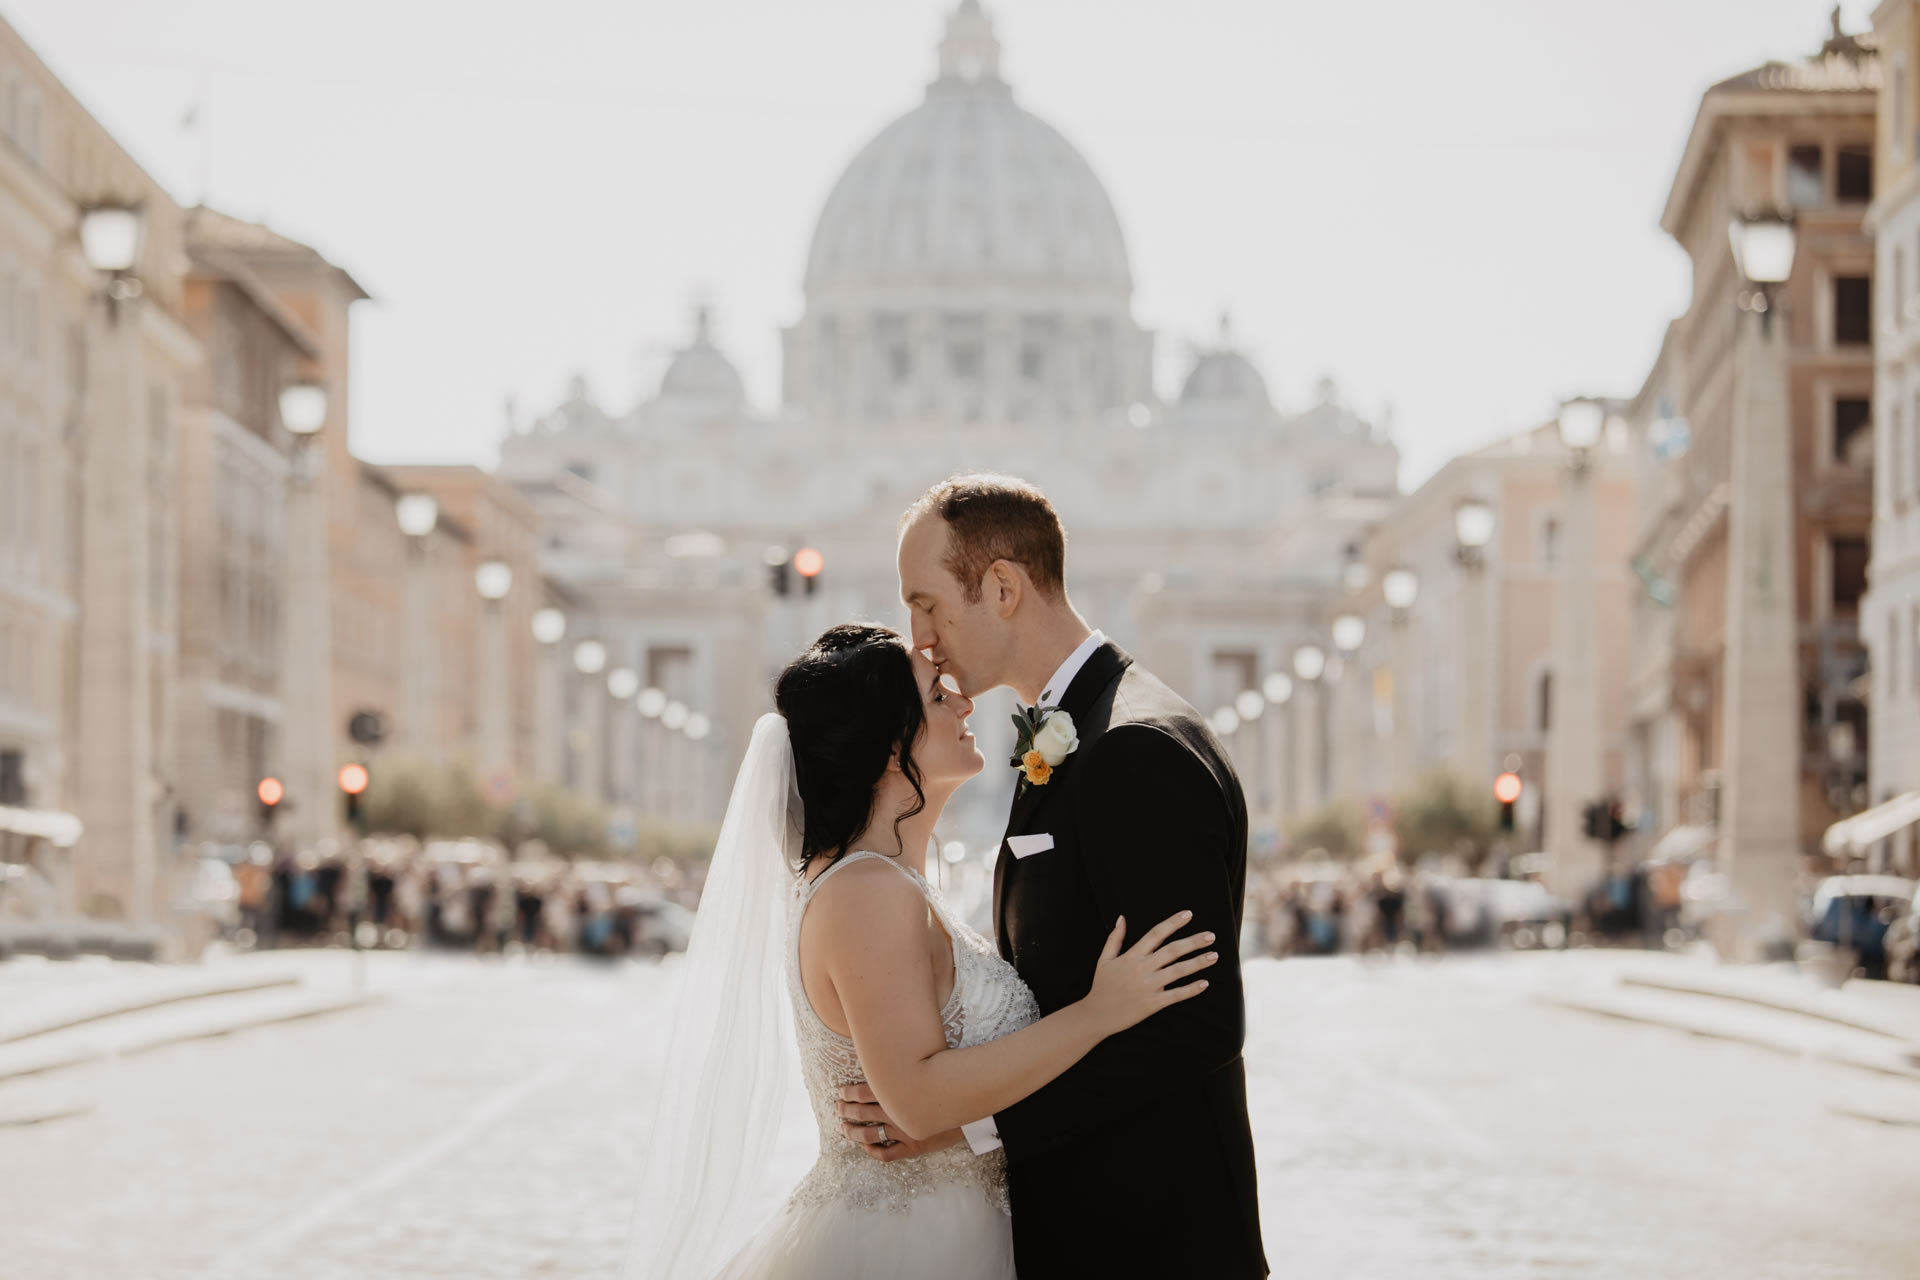 - 25 :: A breath-taking wedding in Rome, the eternal city :: Luxury wedding photography - 24 ::  - 25